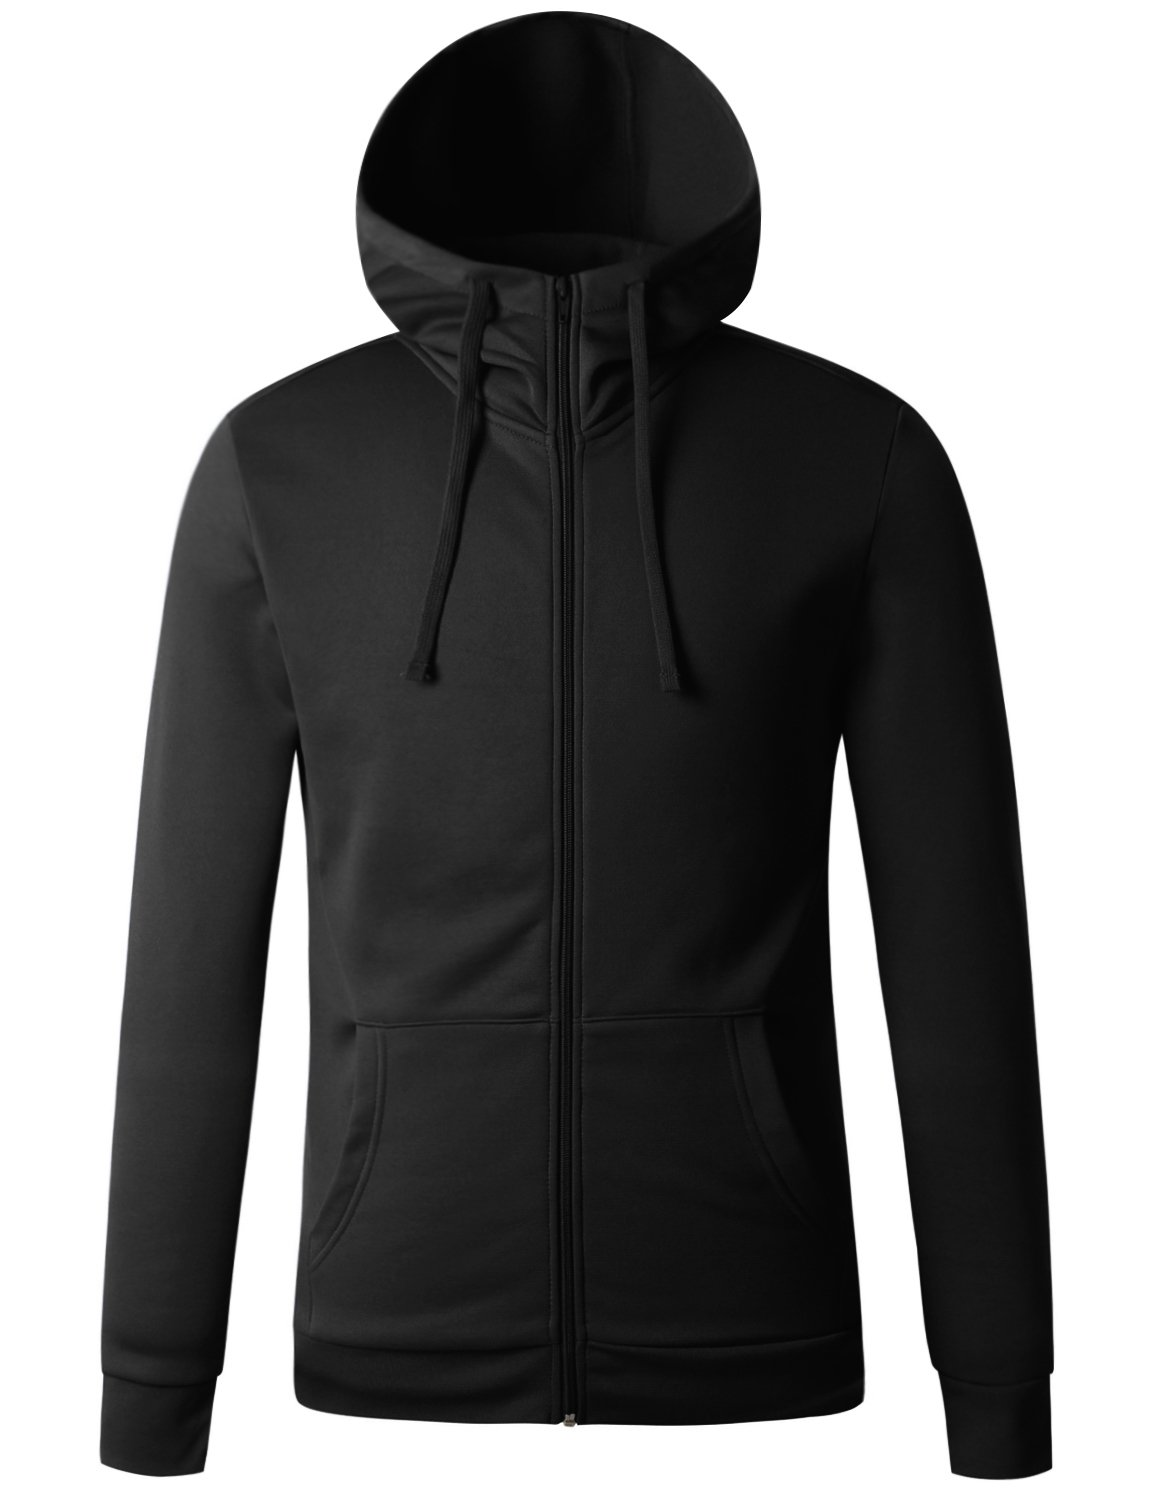 Regna X for Mens Zipped Hooded Lined Lining Black Medium Fleece high Neck Jacket by Regna X